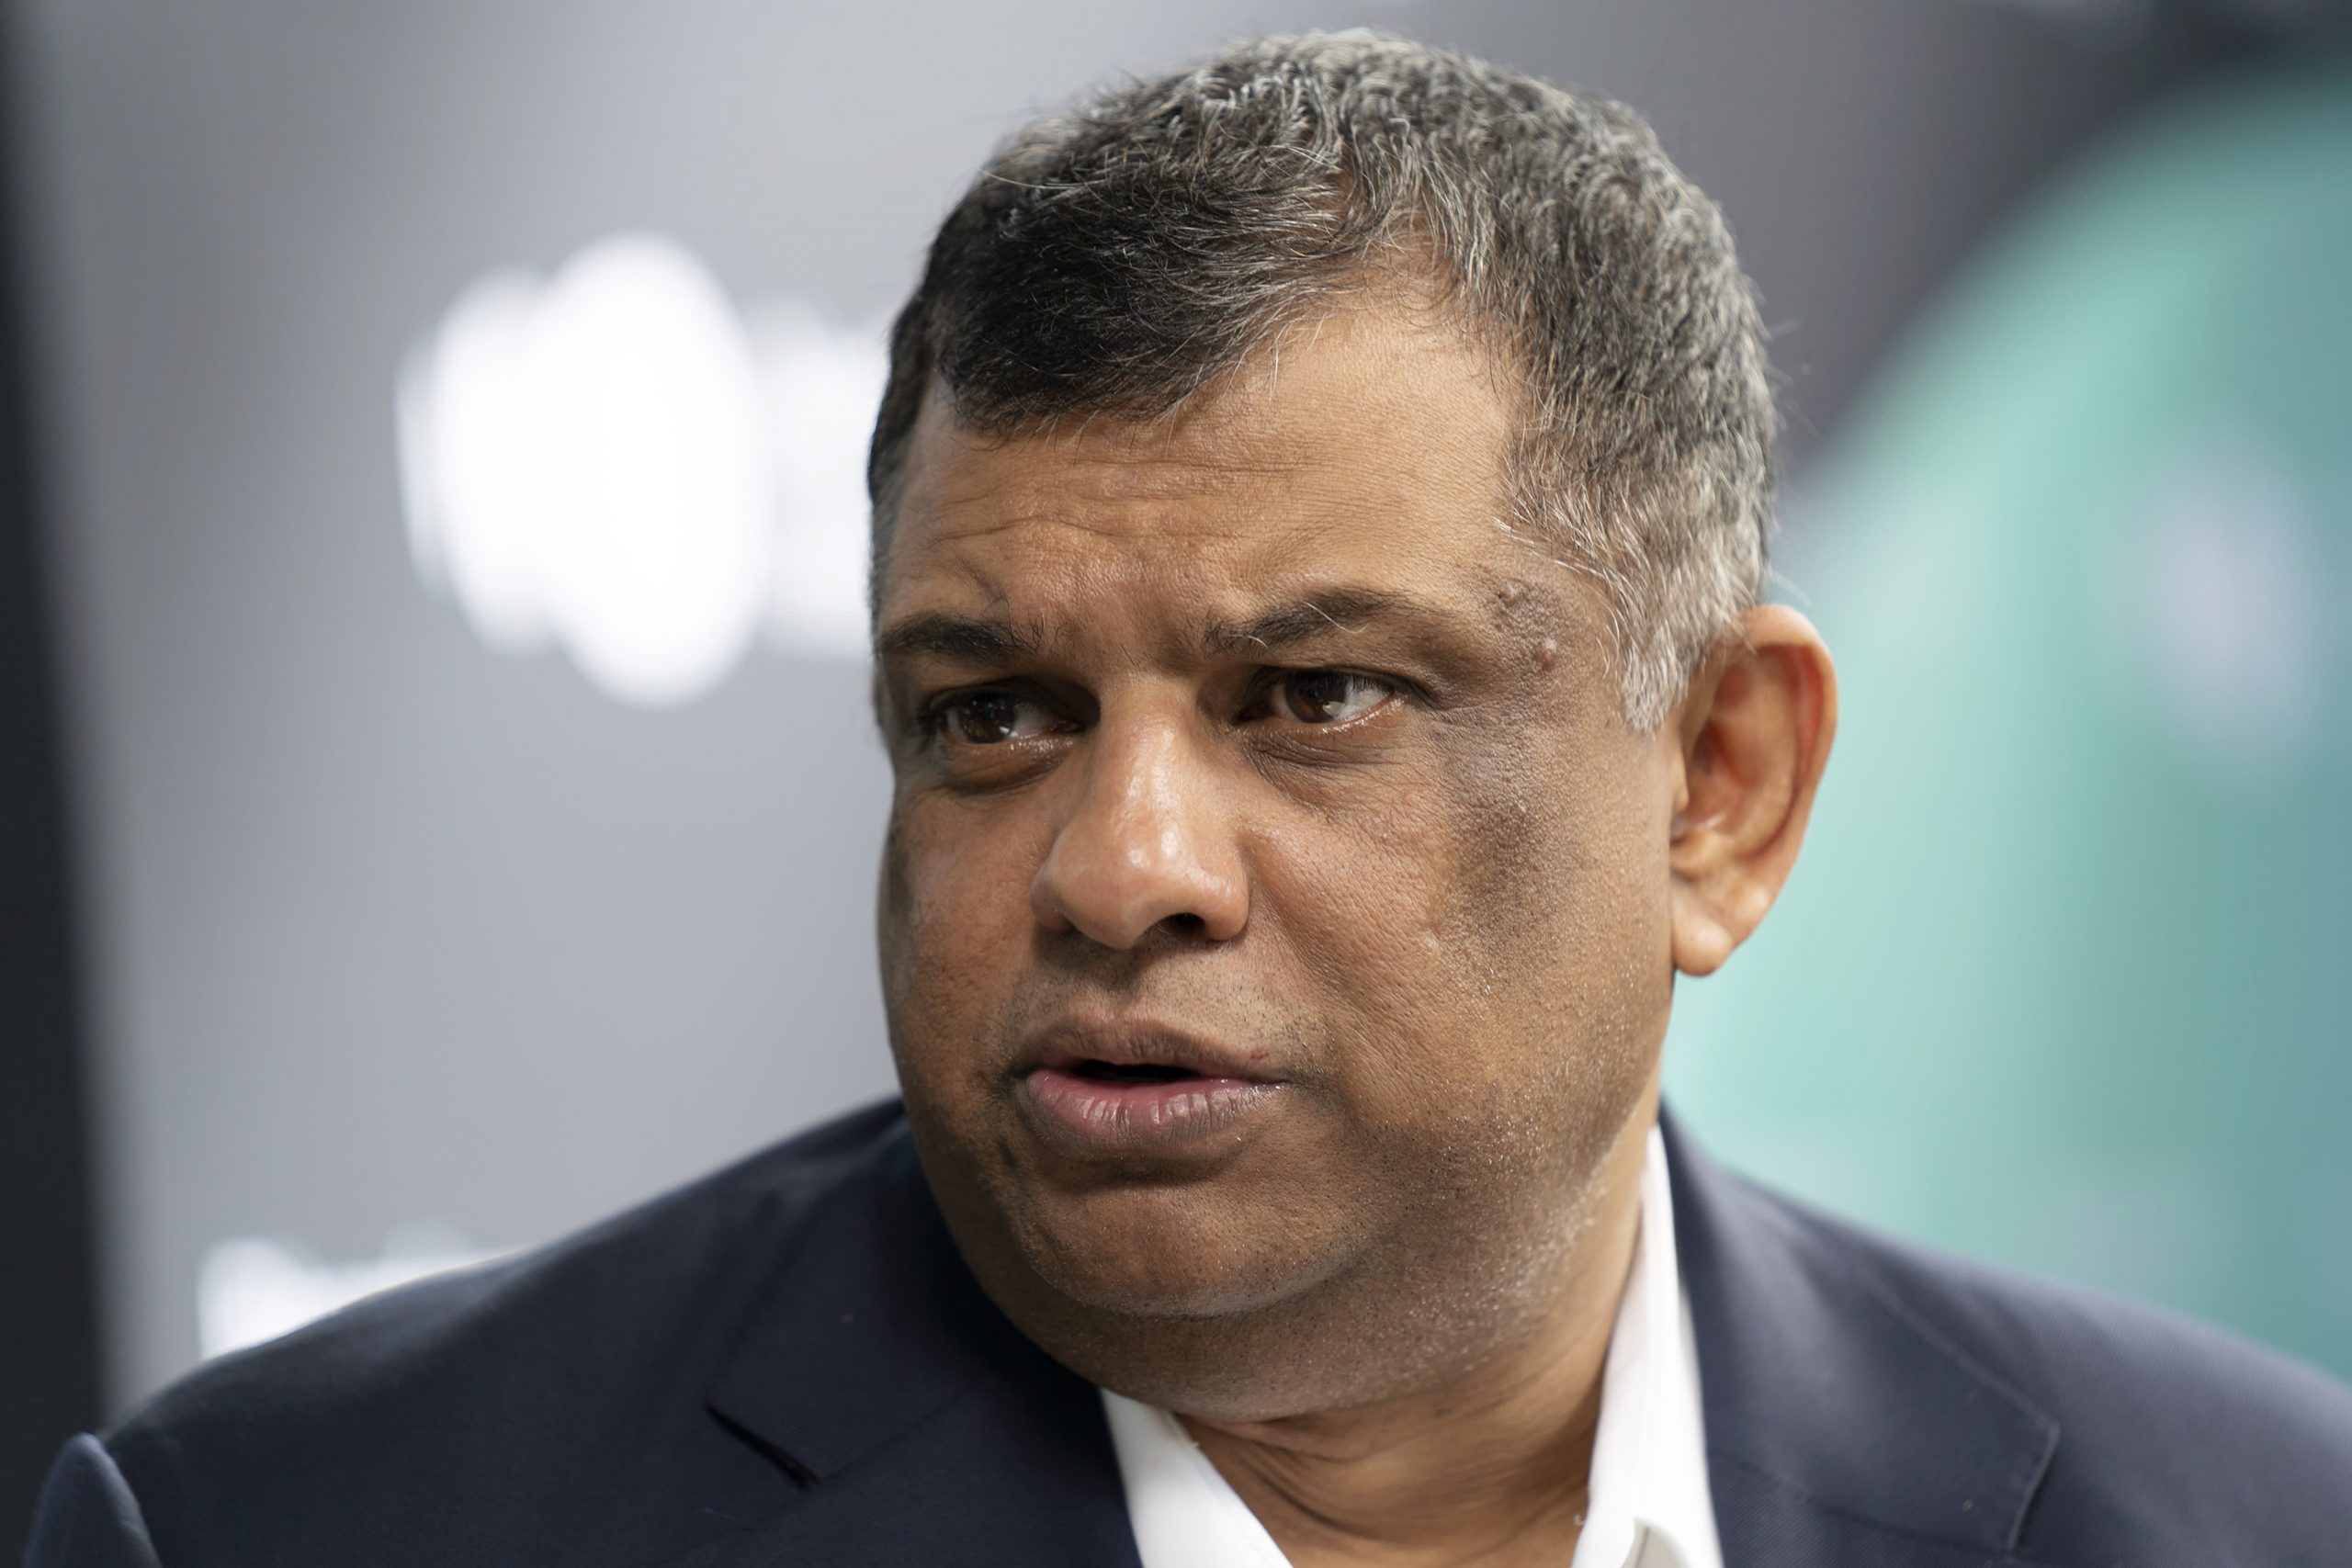 AirAsia expects to resume flying to most routes by the end of 2021, CEO Tony Fernandes says